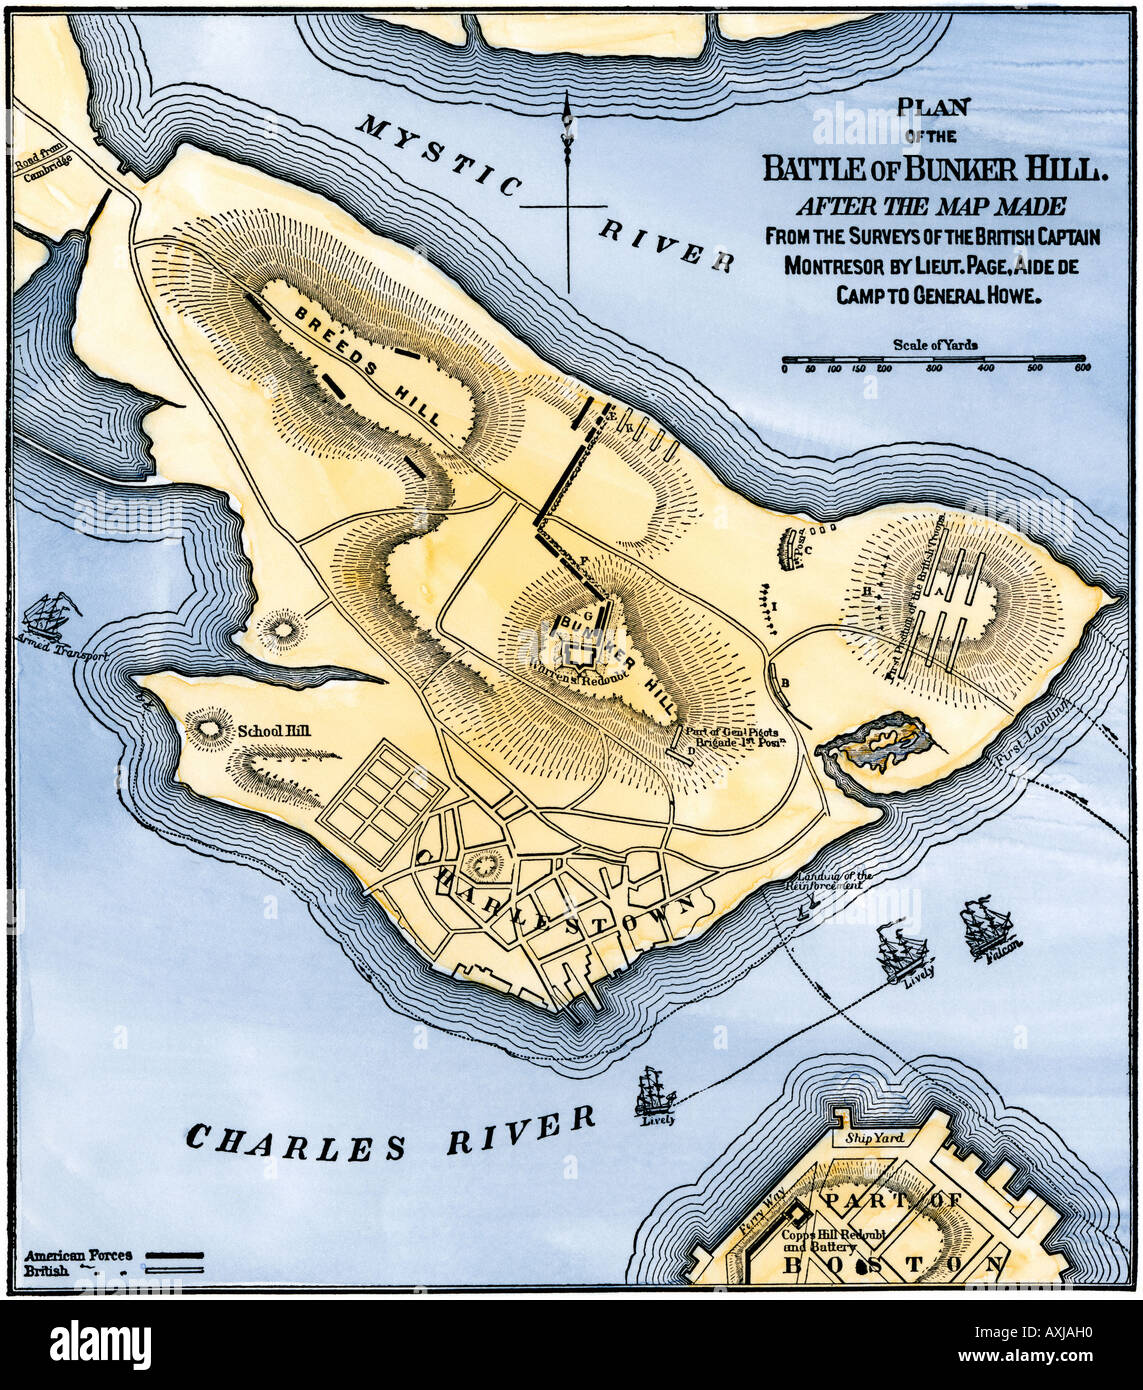 map of the battle of bunker hill drawn from a british map